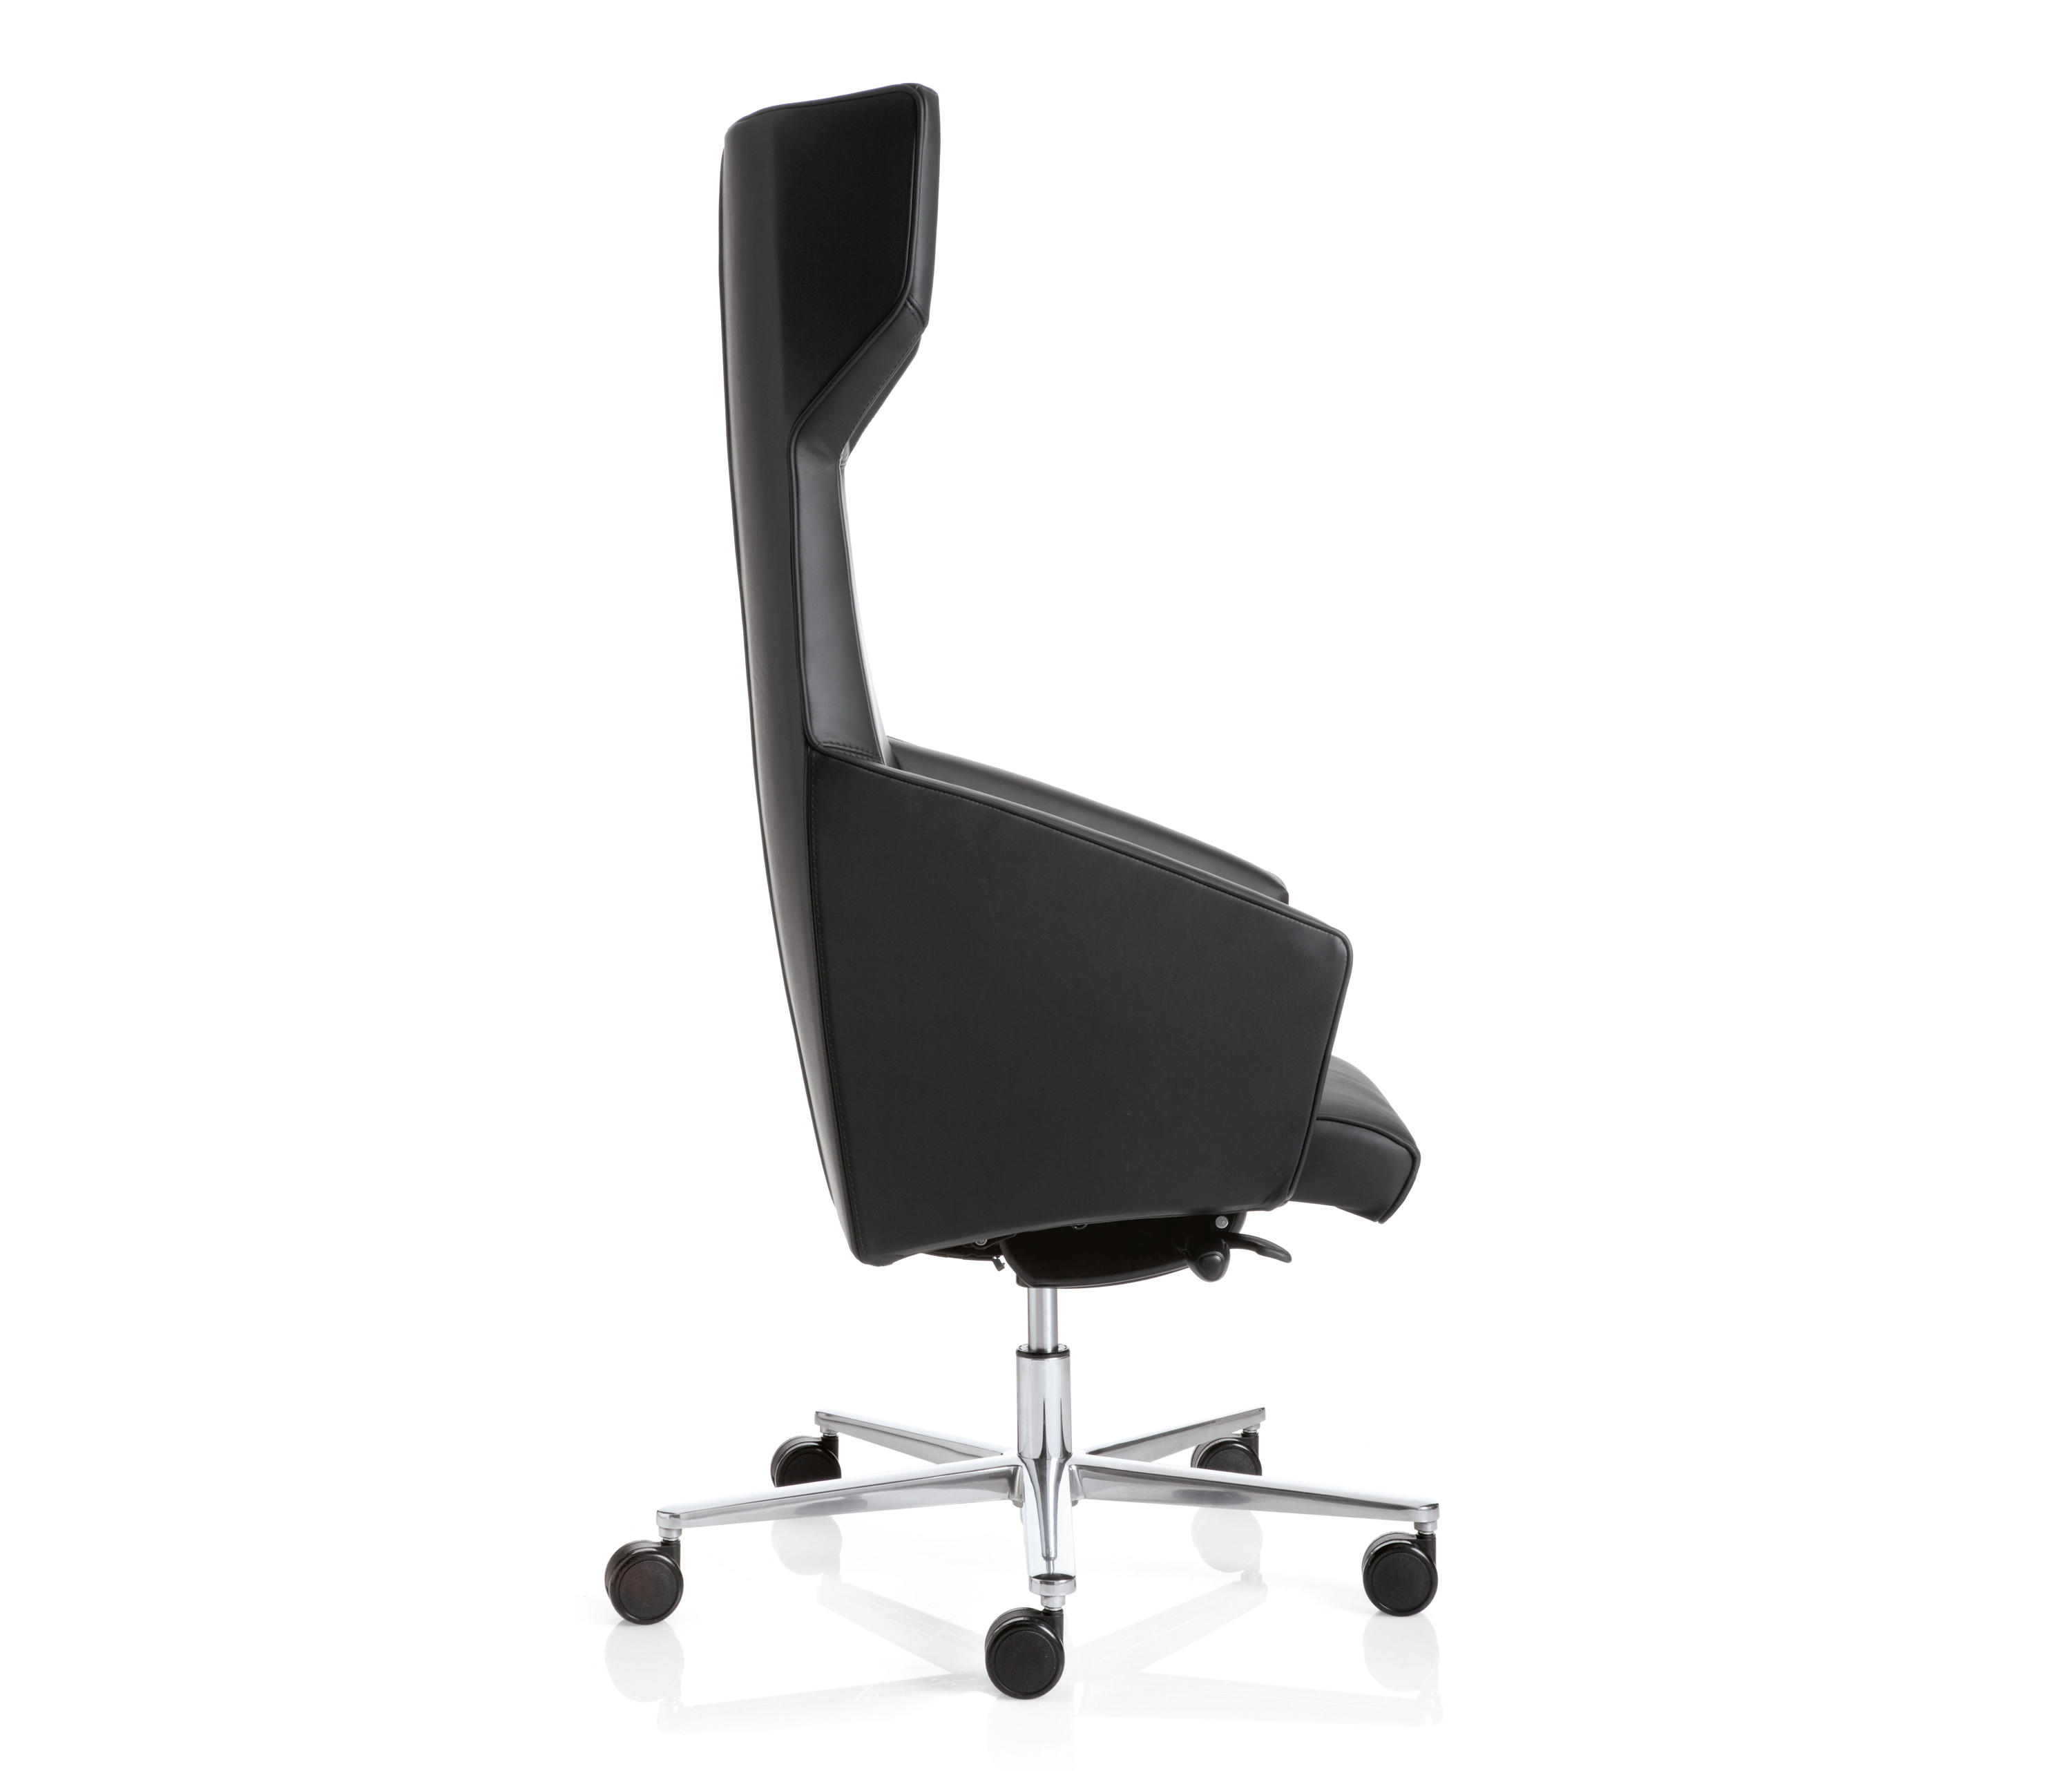 Business Chair Business Class Office Chairs From Emmegi Architonic